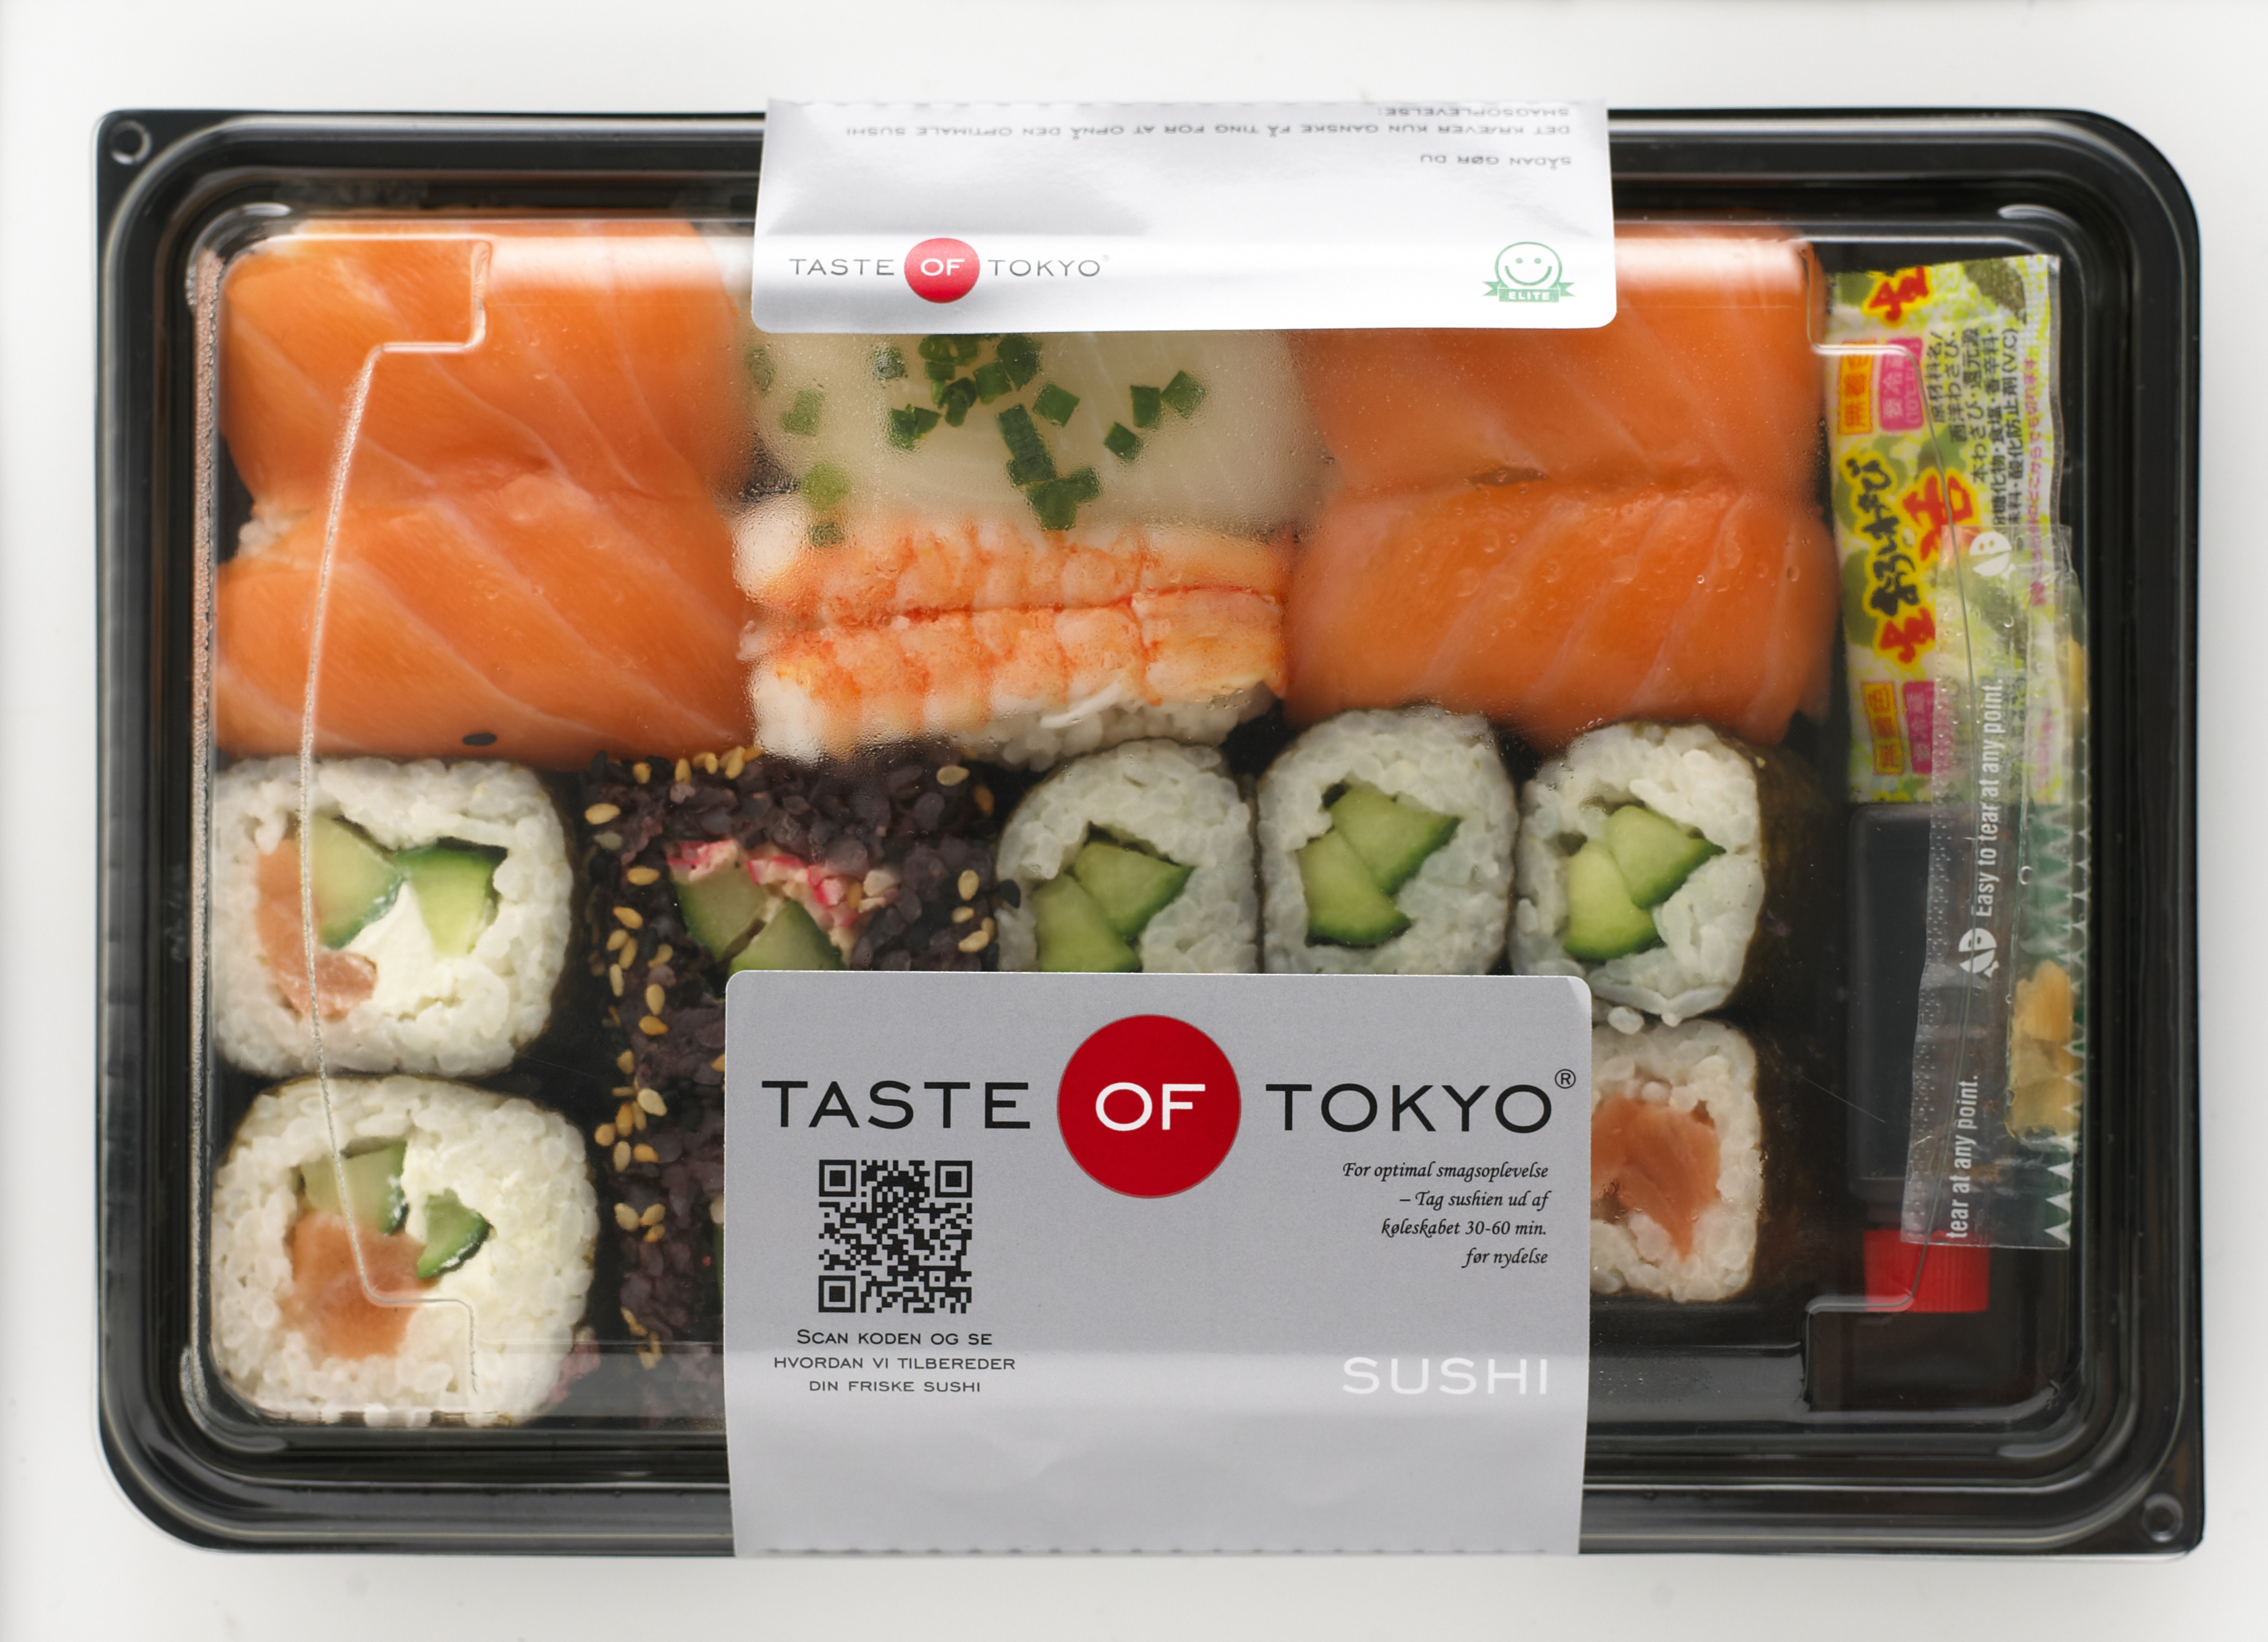 Sushi Bremerhaven Taste Of Tokyo Sushi Production Transferred To Deutsche See